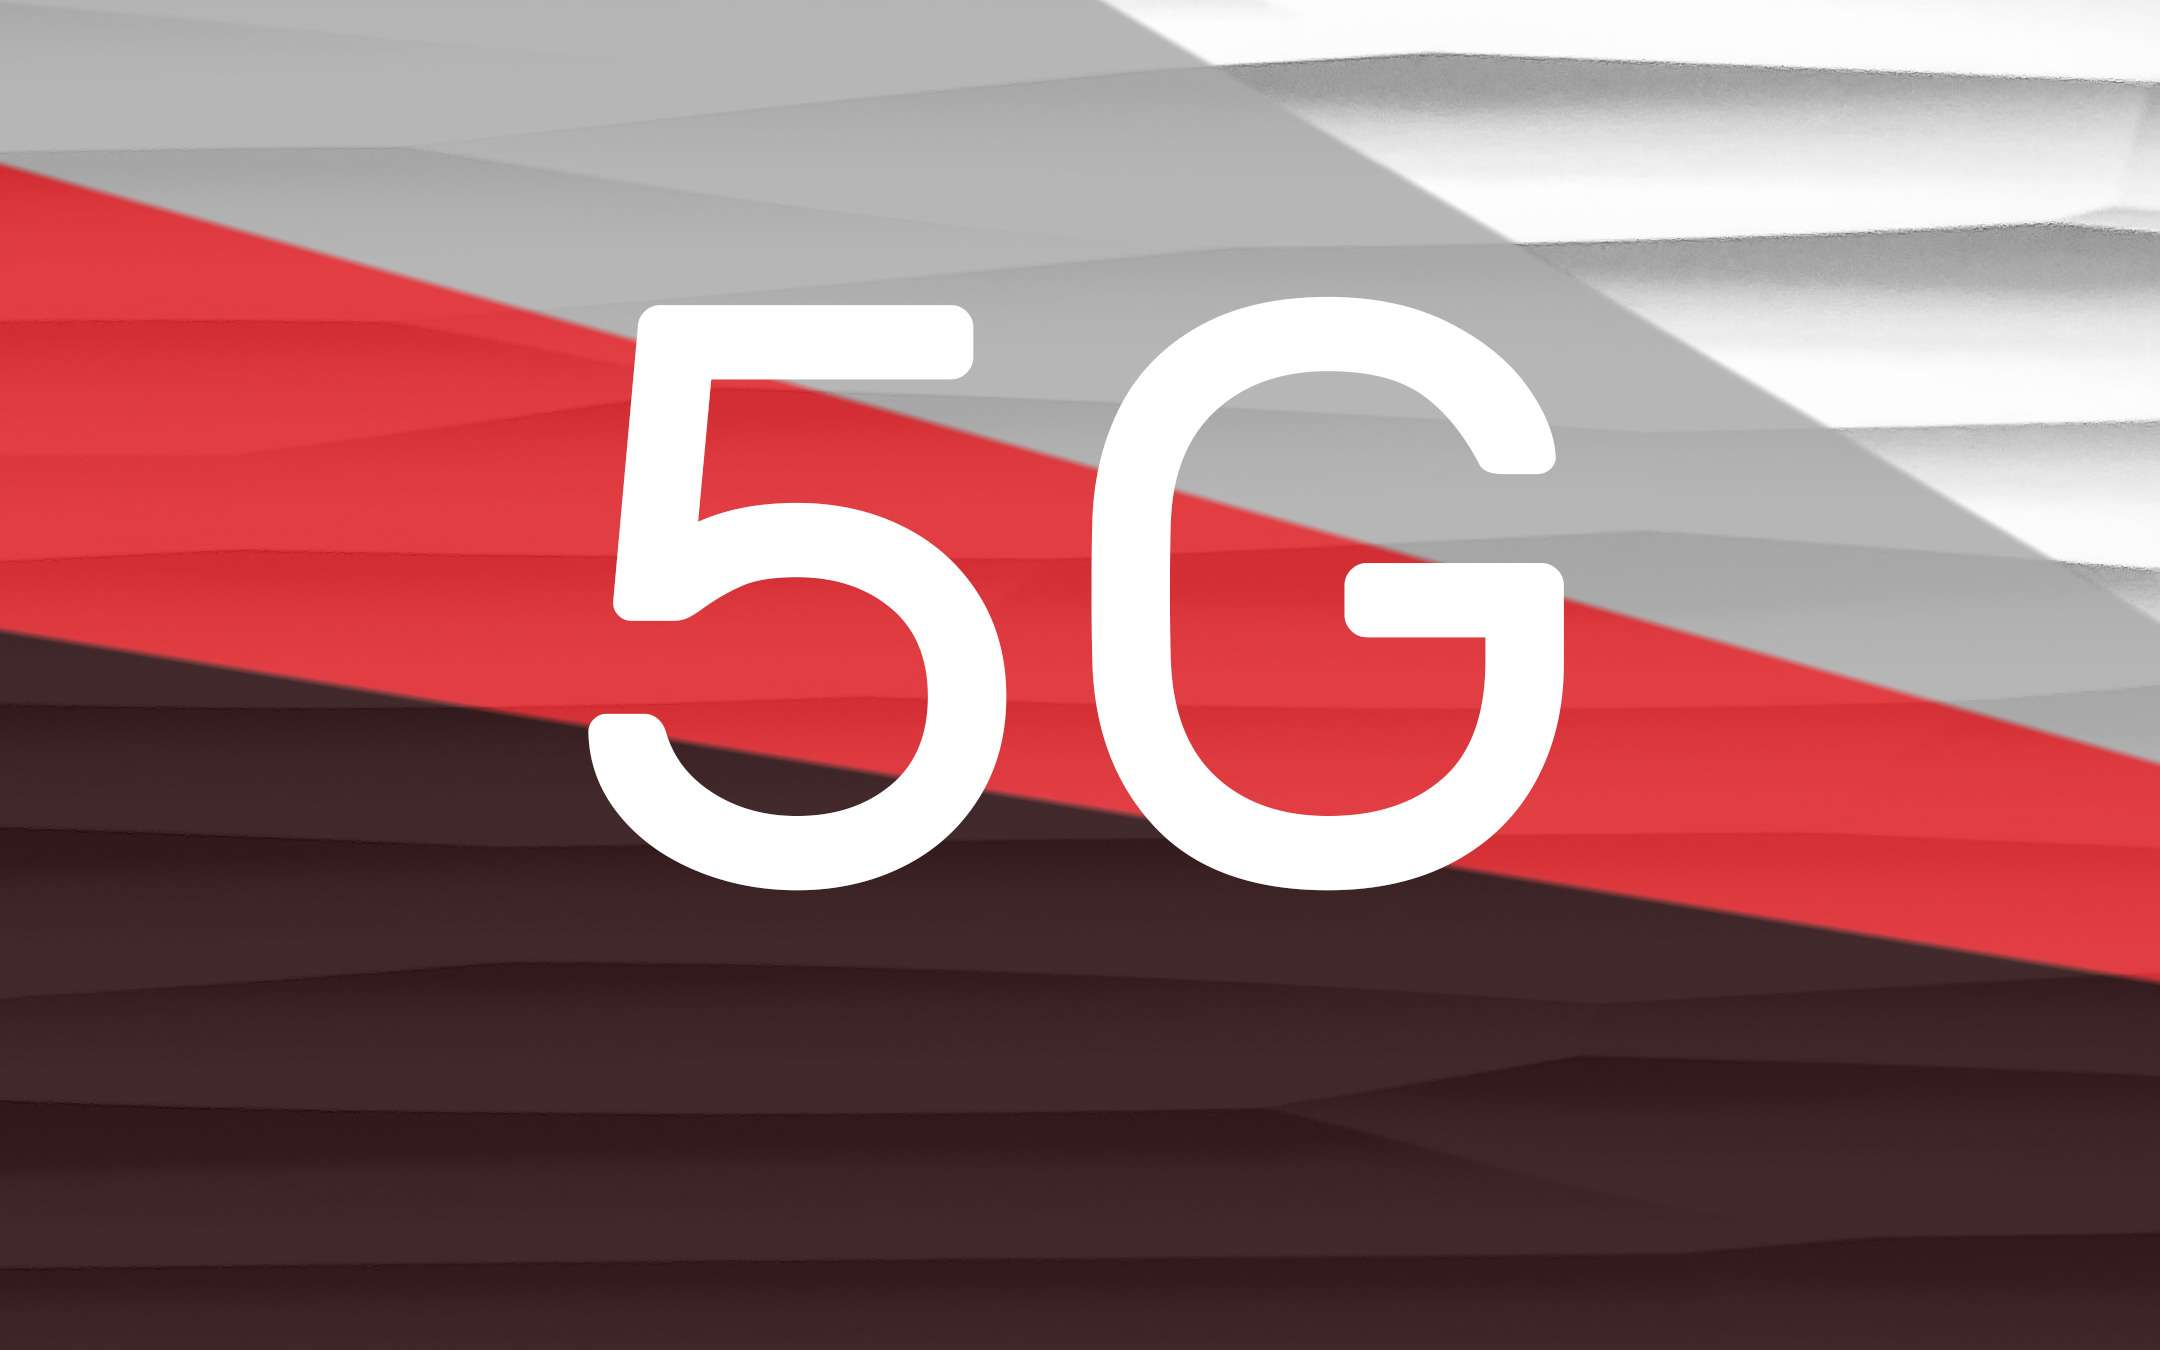 5G as a driver for post-COVID-19 recovery